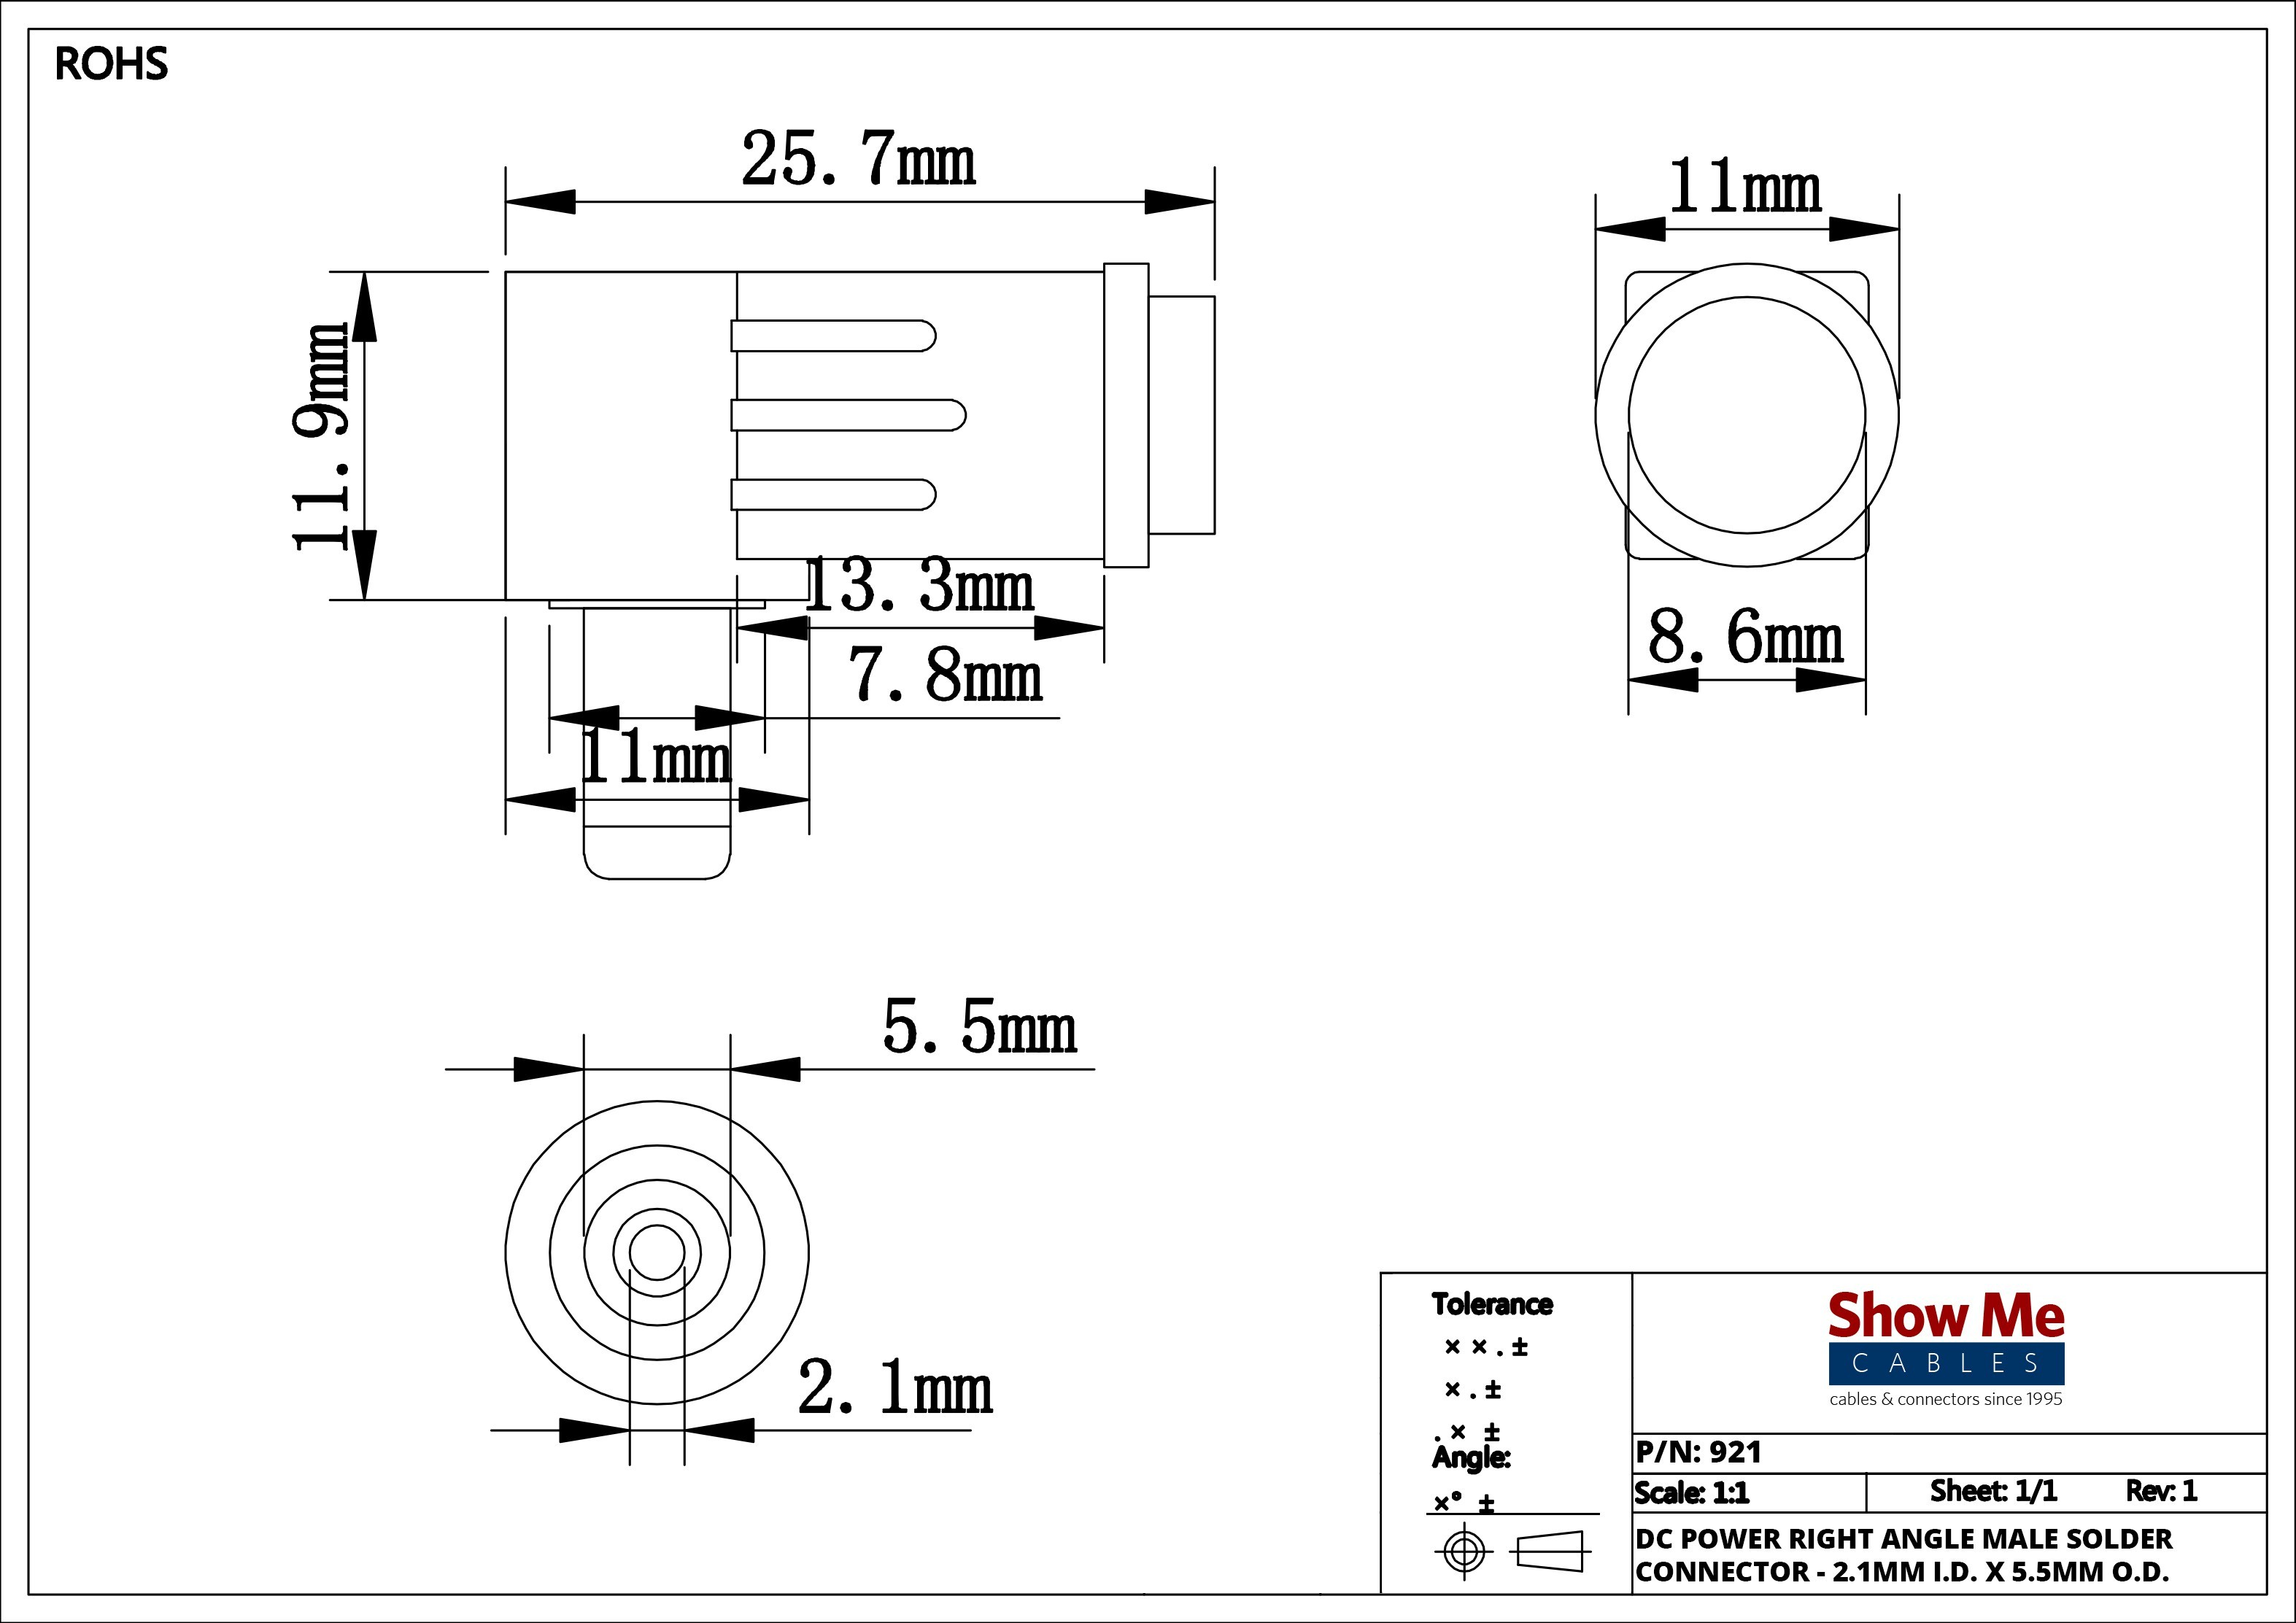 220v Plug Wiring Diagram New 4 Prong Twist Lock Plug Wiring ...  Prong Twist Lock Plug Wiring Diagram on